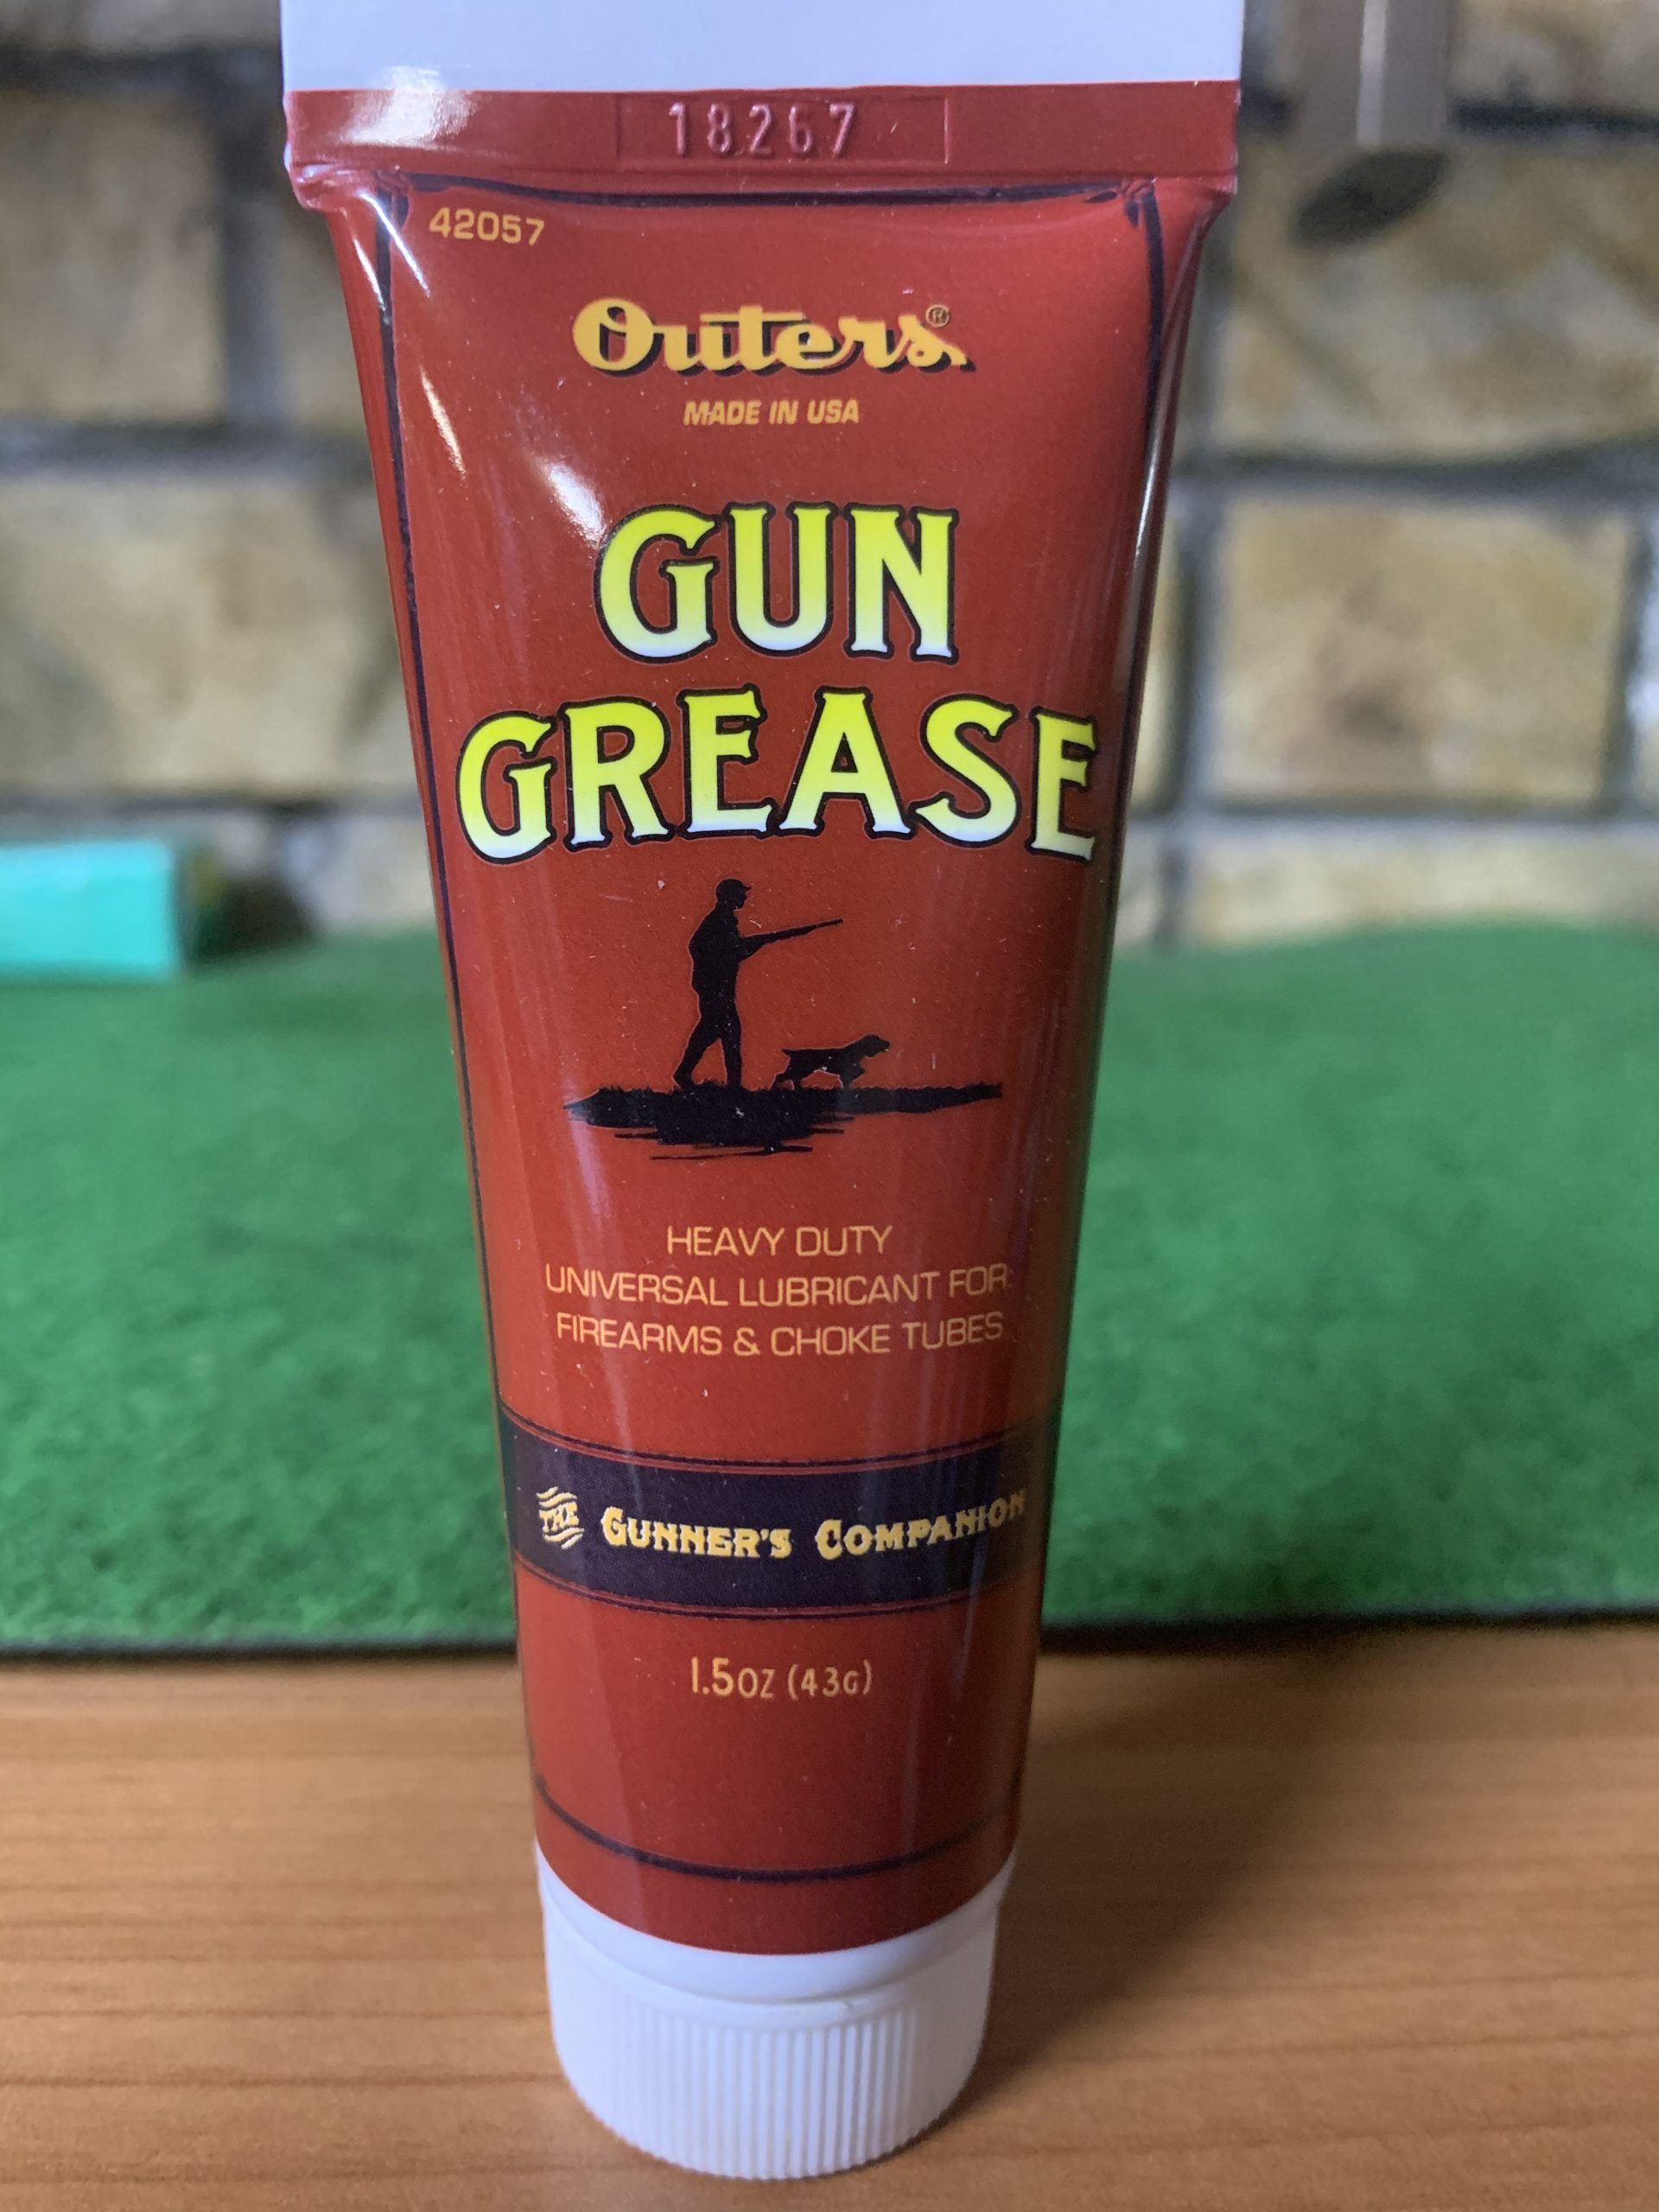 Outers Gun Grease Heavy Duty lubricant 4.3 gram tube